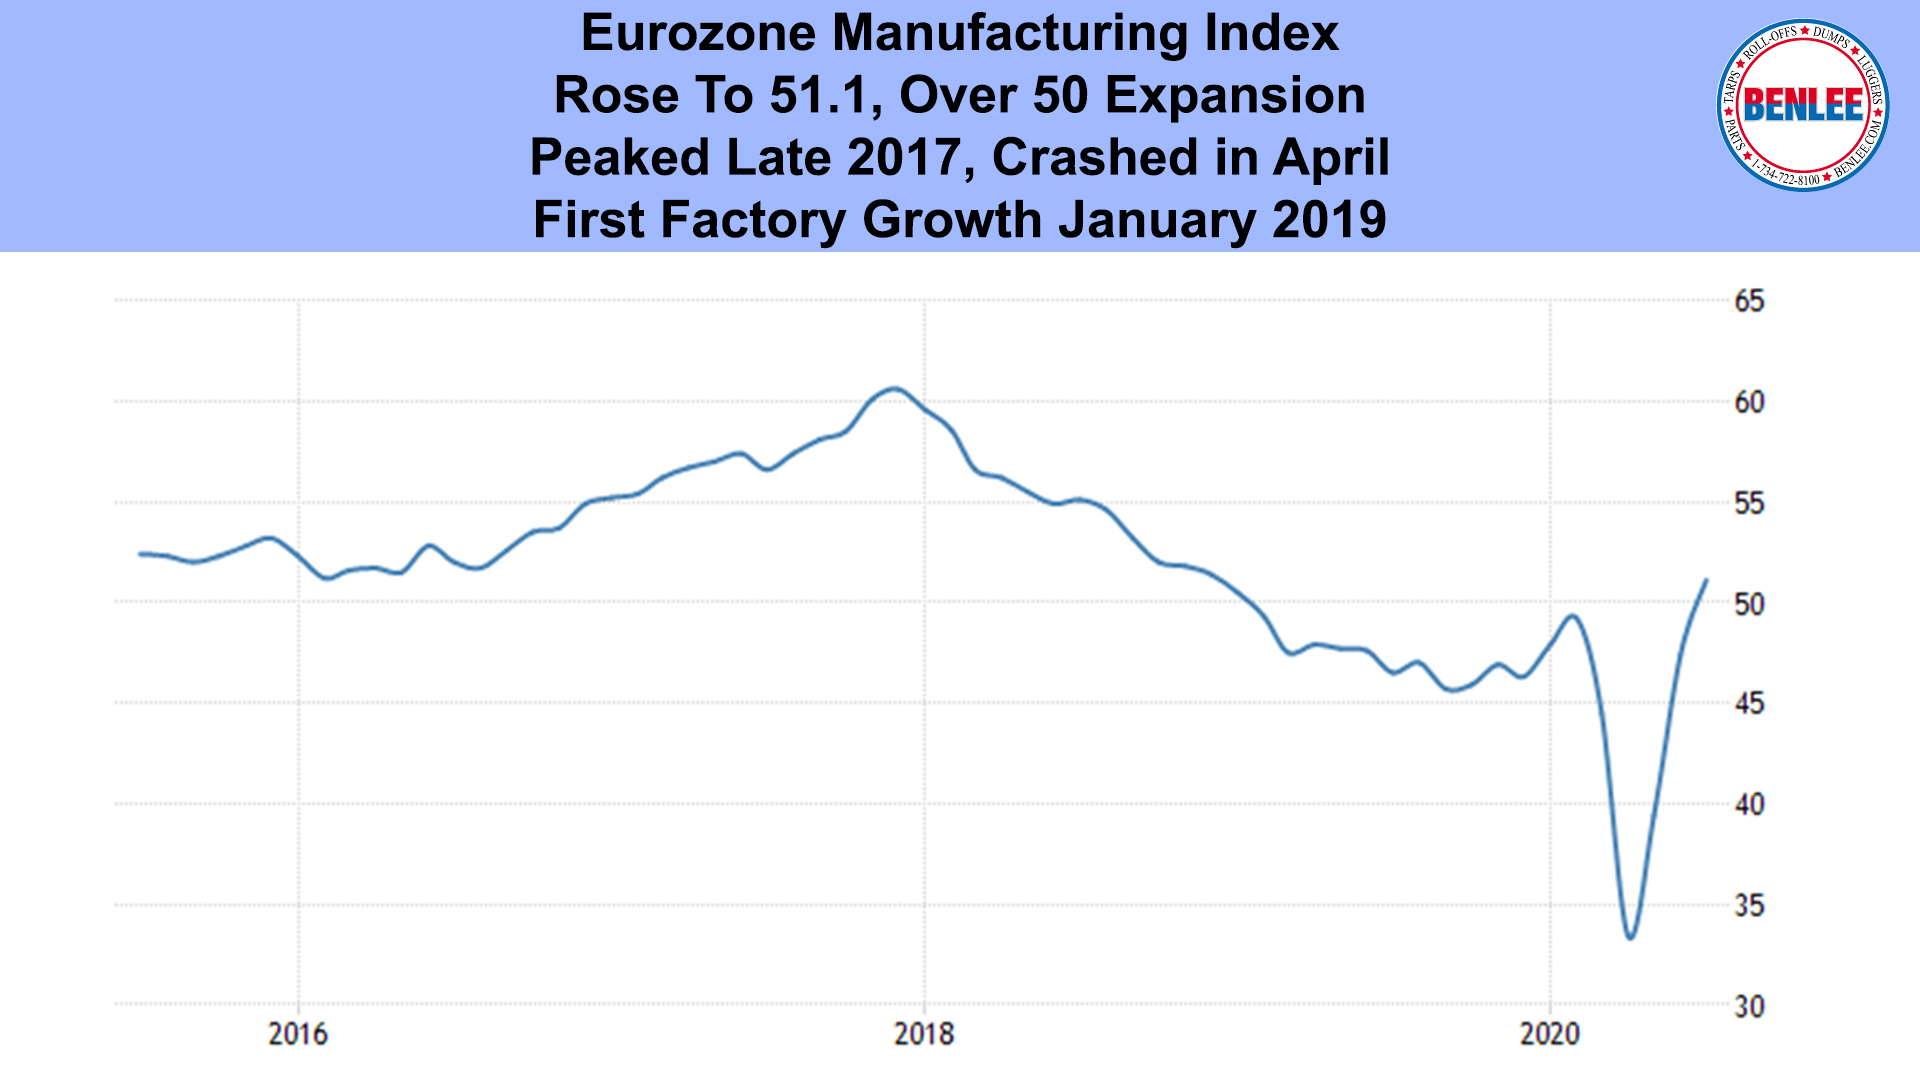 Eurozone Manufacturing Index